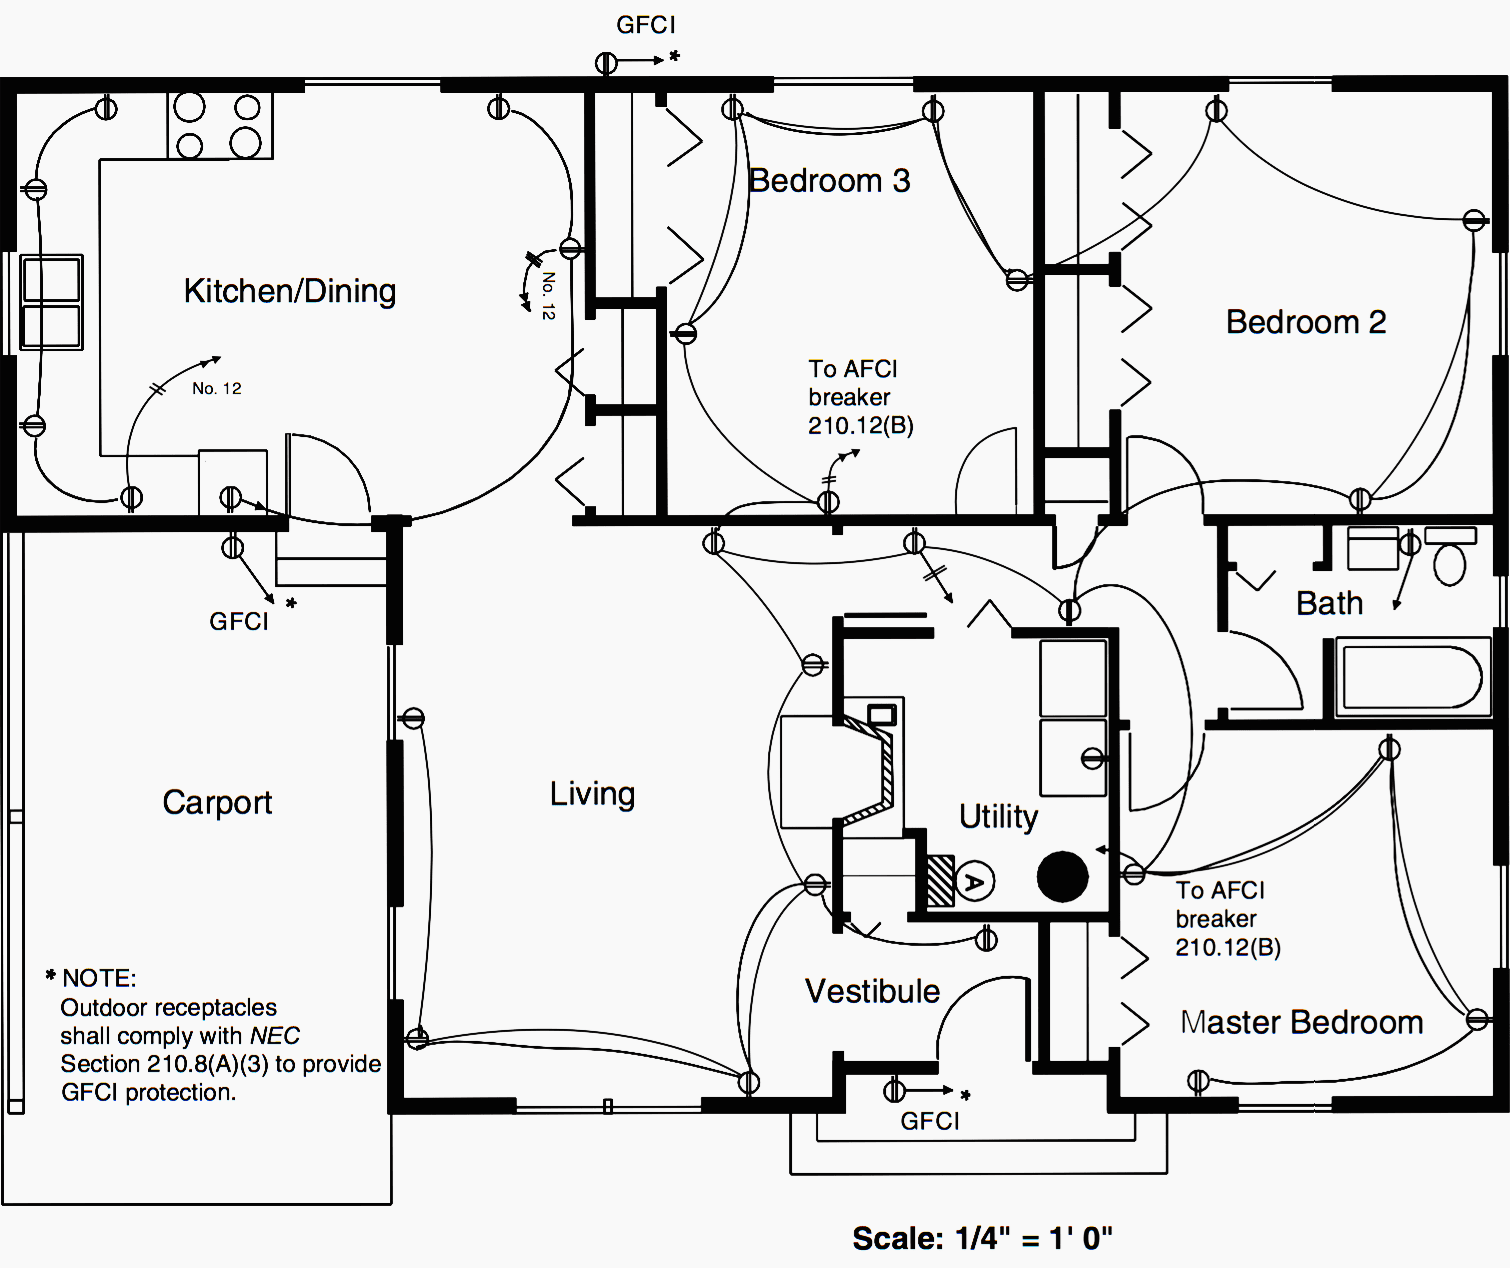 Floor plan of a residence showing the duplex receptacle layout